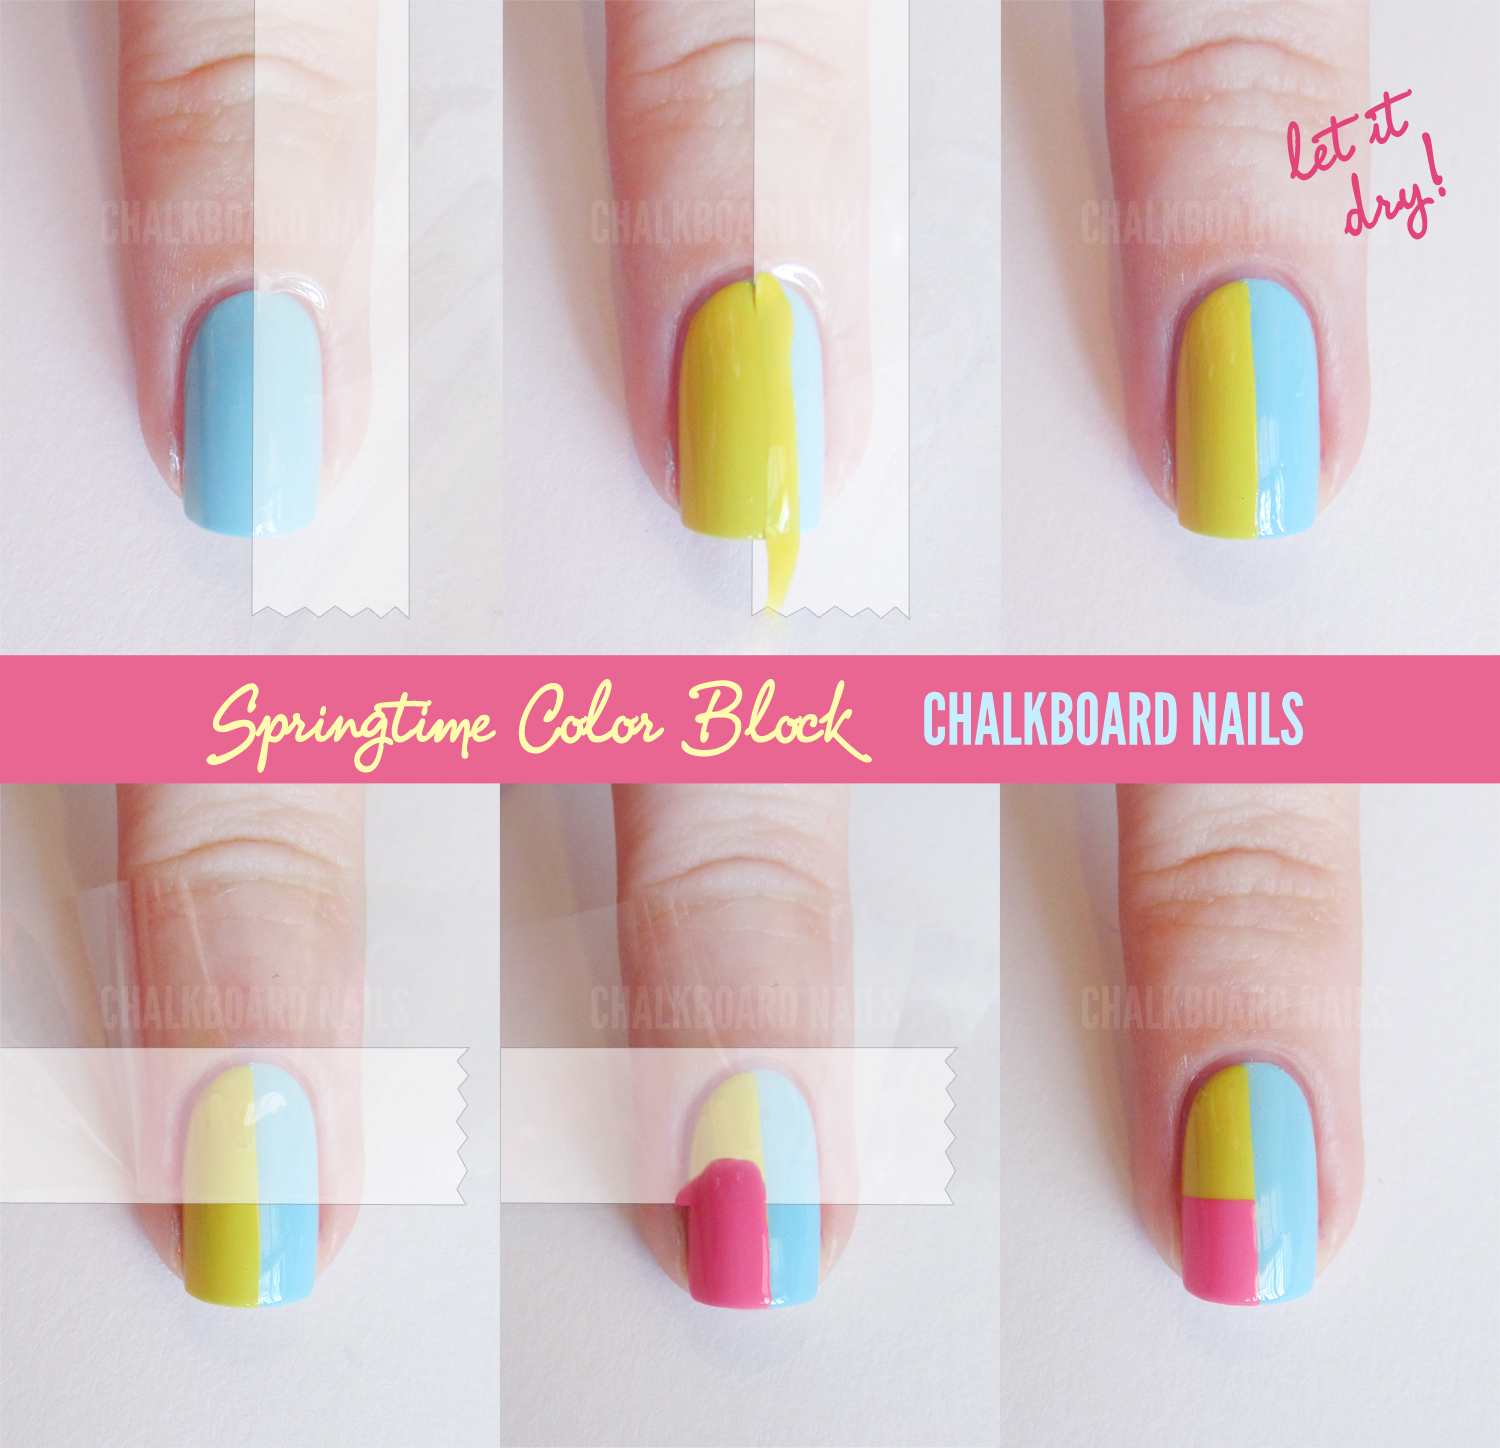 sally hansen spring color block tape manicure tutorial chalkboard nails nail art blog. Black Bedroom Furniture Sets. Home Design Ideas